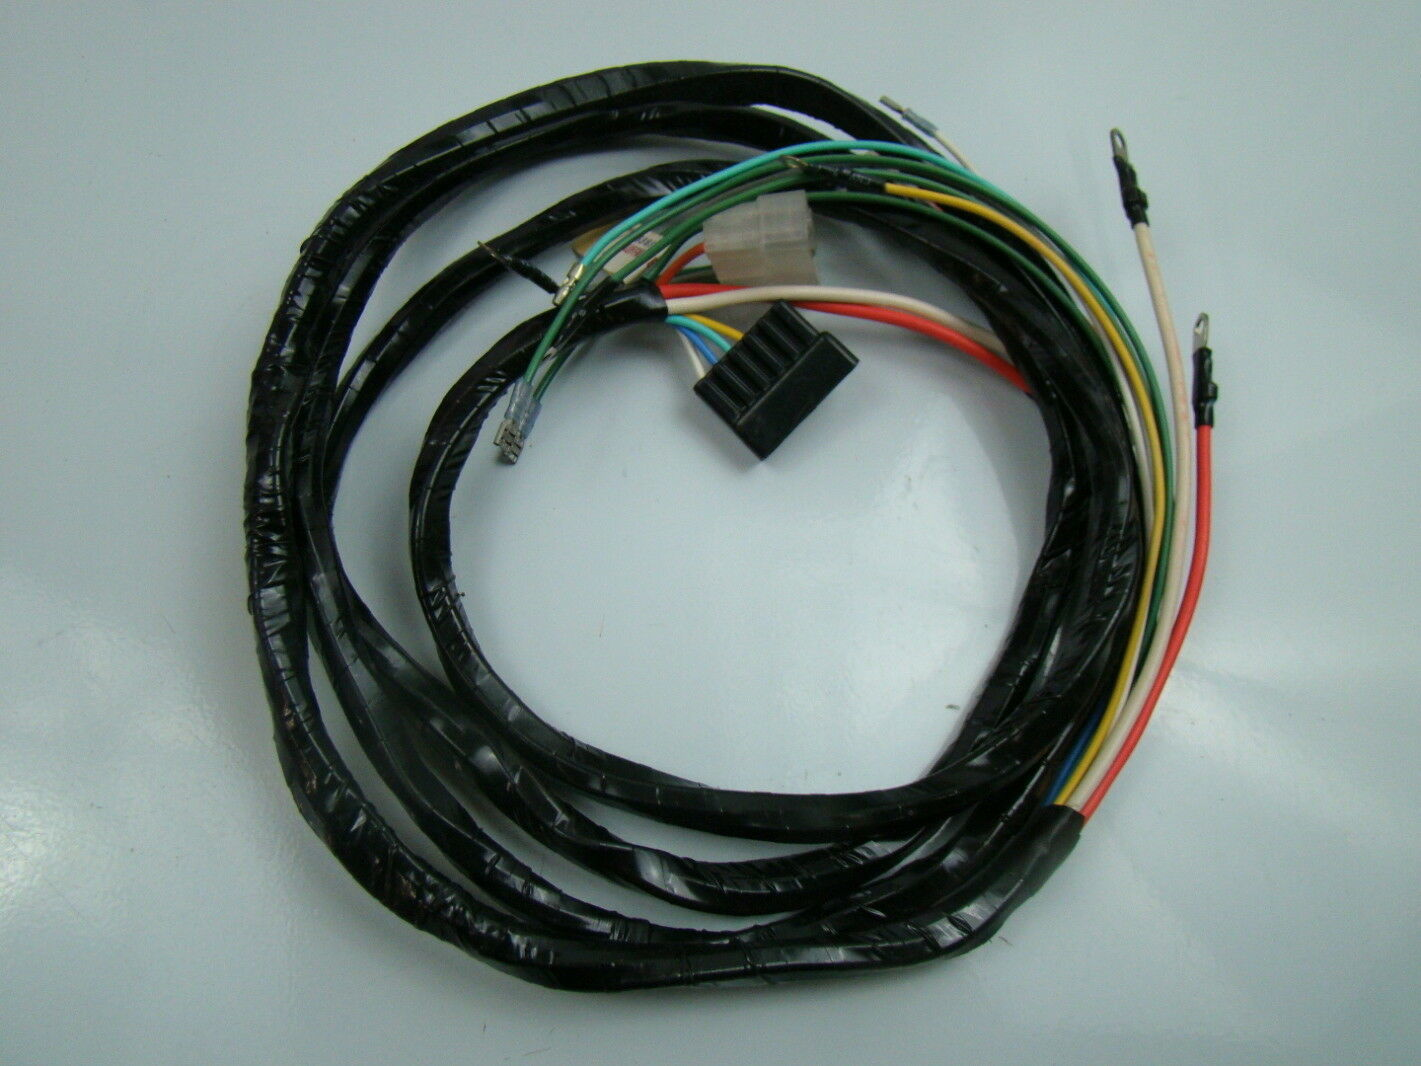 jf07862 kauffman engineering wiring harness 536359 kauffman engineering wiring harness 536359 ebay kauffman wire harness at soozxer.org